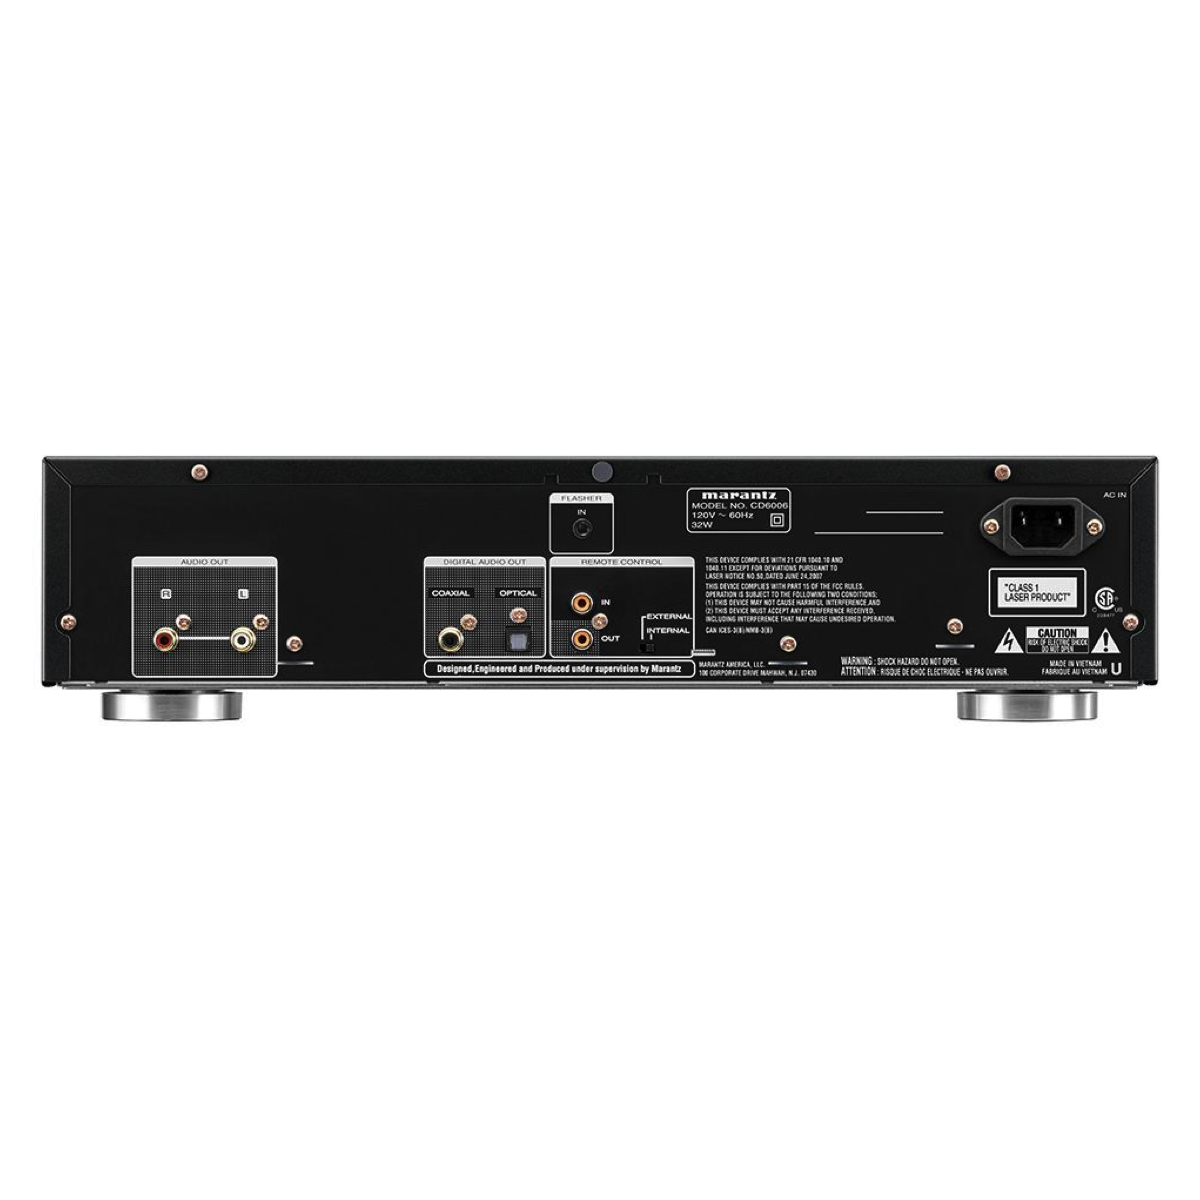 Marantz CD6006 - CD player, Marantz, Digital players & streamers - AVStore.in